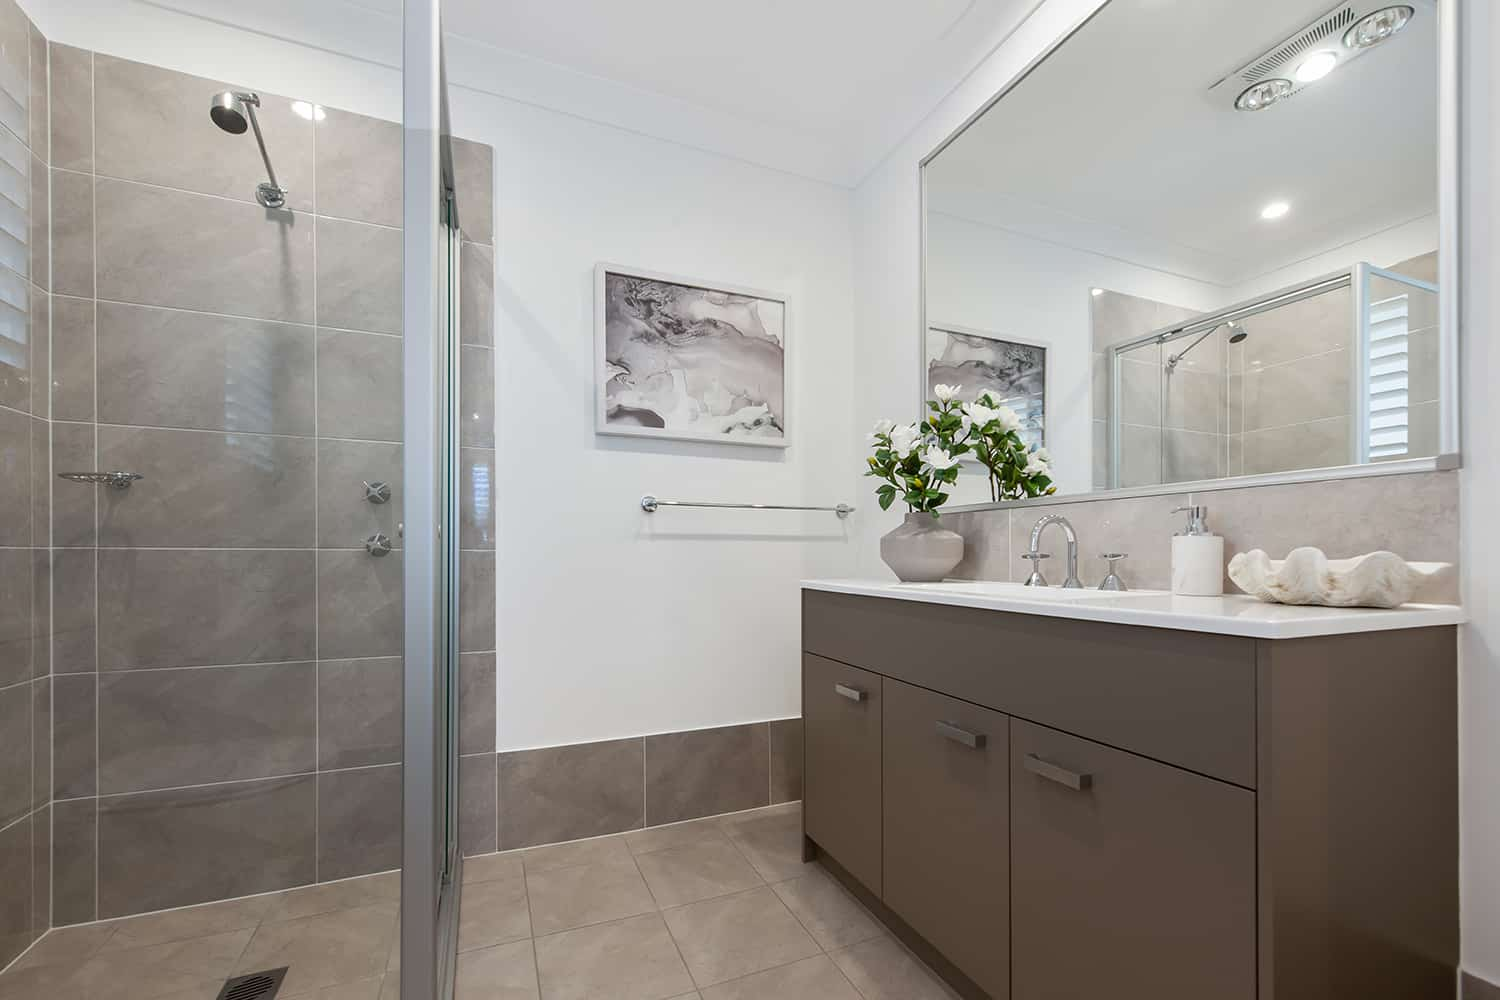 Harmony 12.5 Four - Ensuite image. On display at HomeWorld Marsden Park